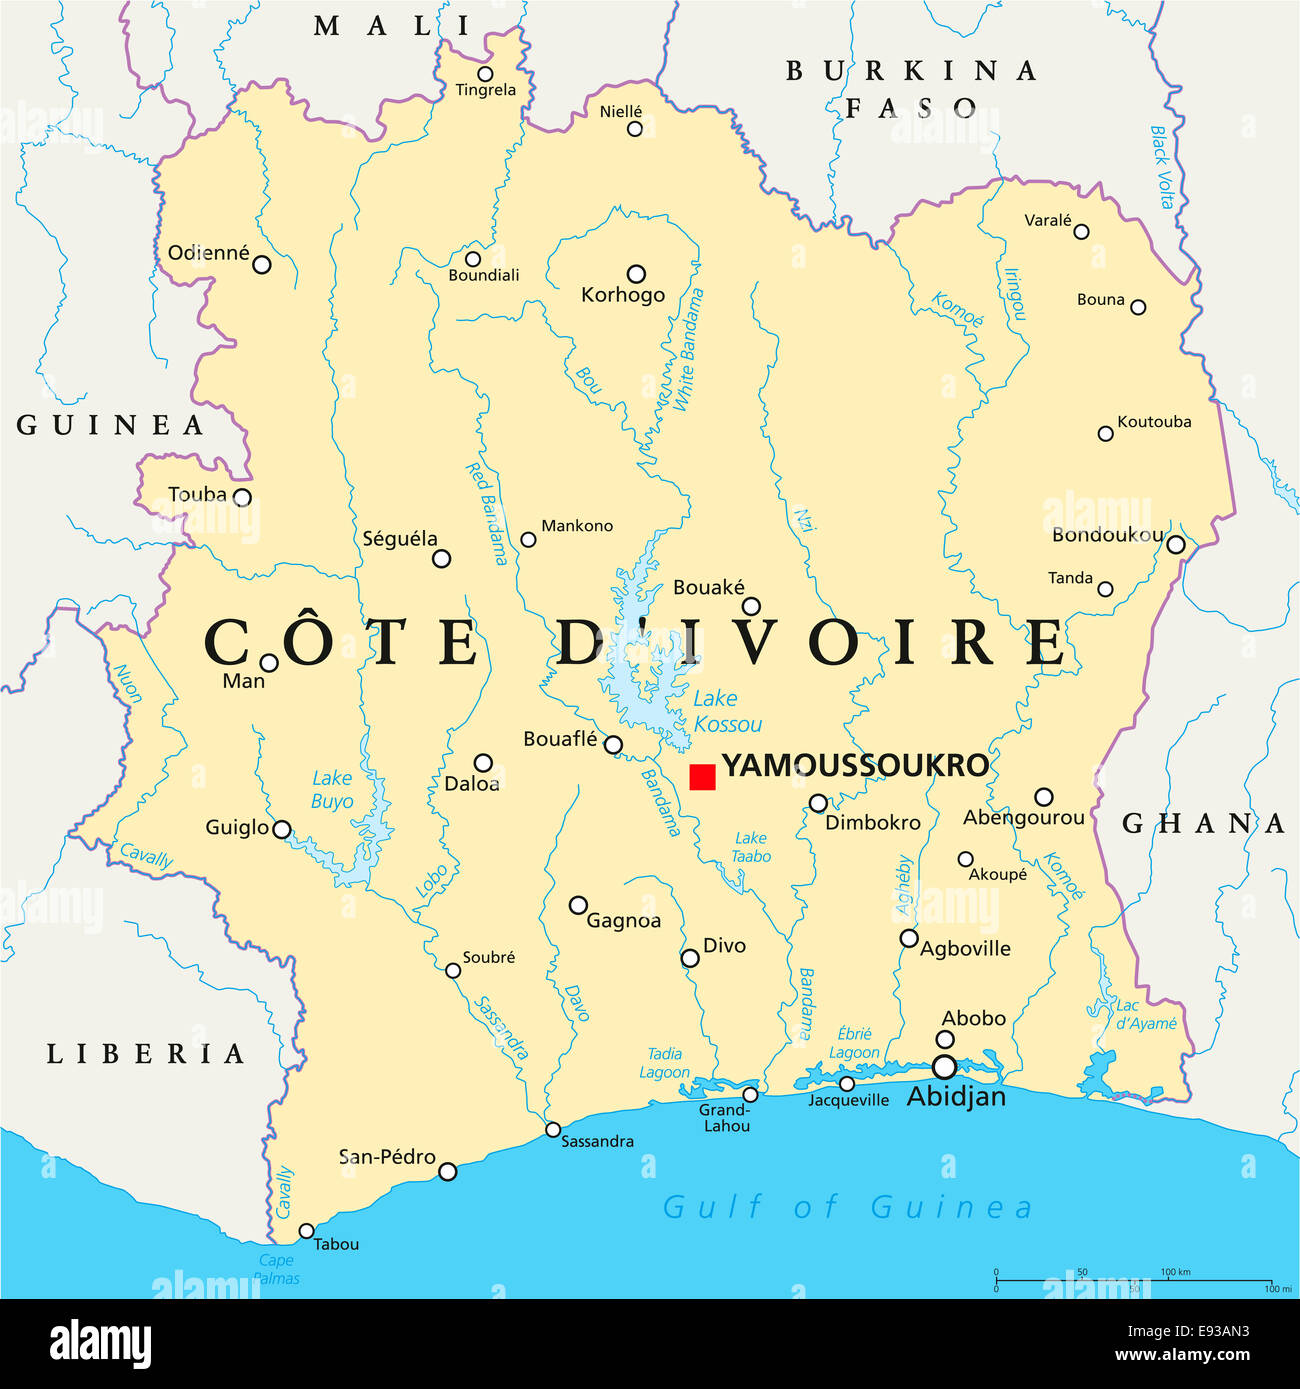 media in ivory coast In ivory coast, being gay isn't against the law but it's also not really allowed at the carnival in bounoua, the men's costumes can't be flamboyant enough it's a vehicle for otherwise stigmatized sexual minorities in the country.